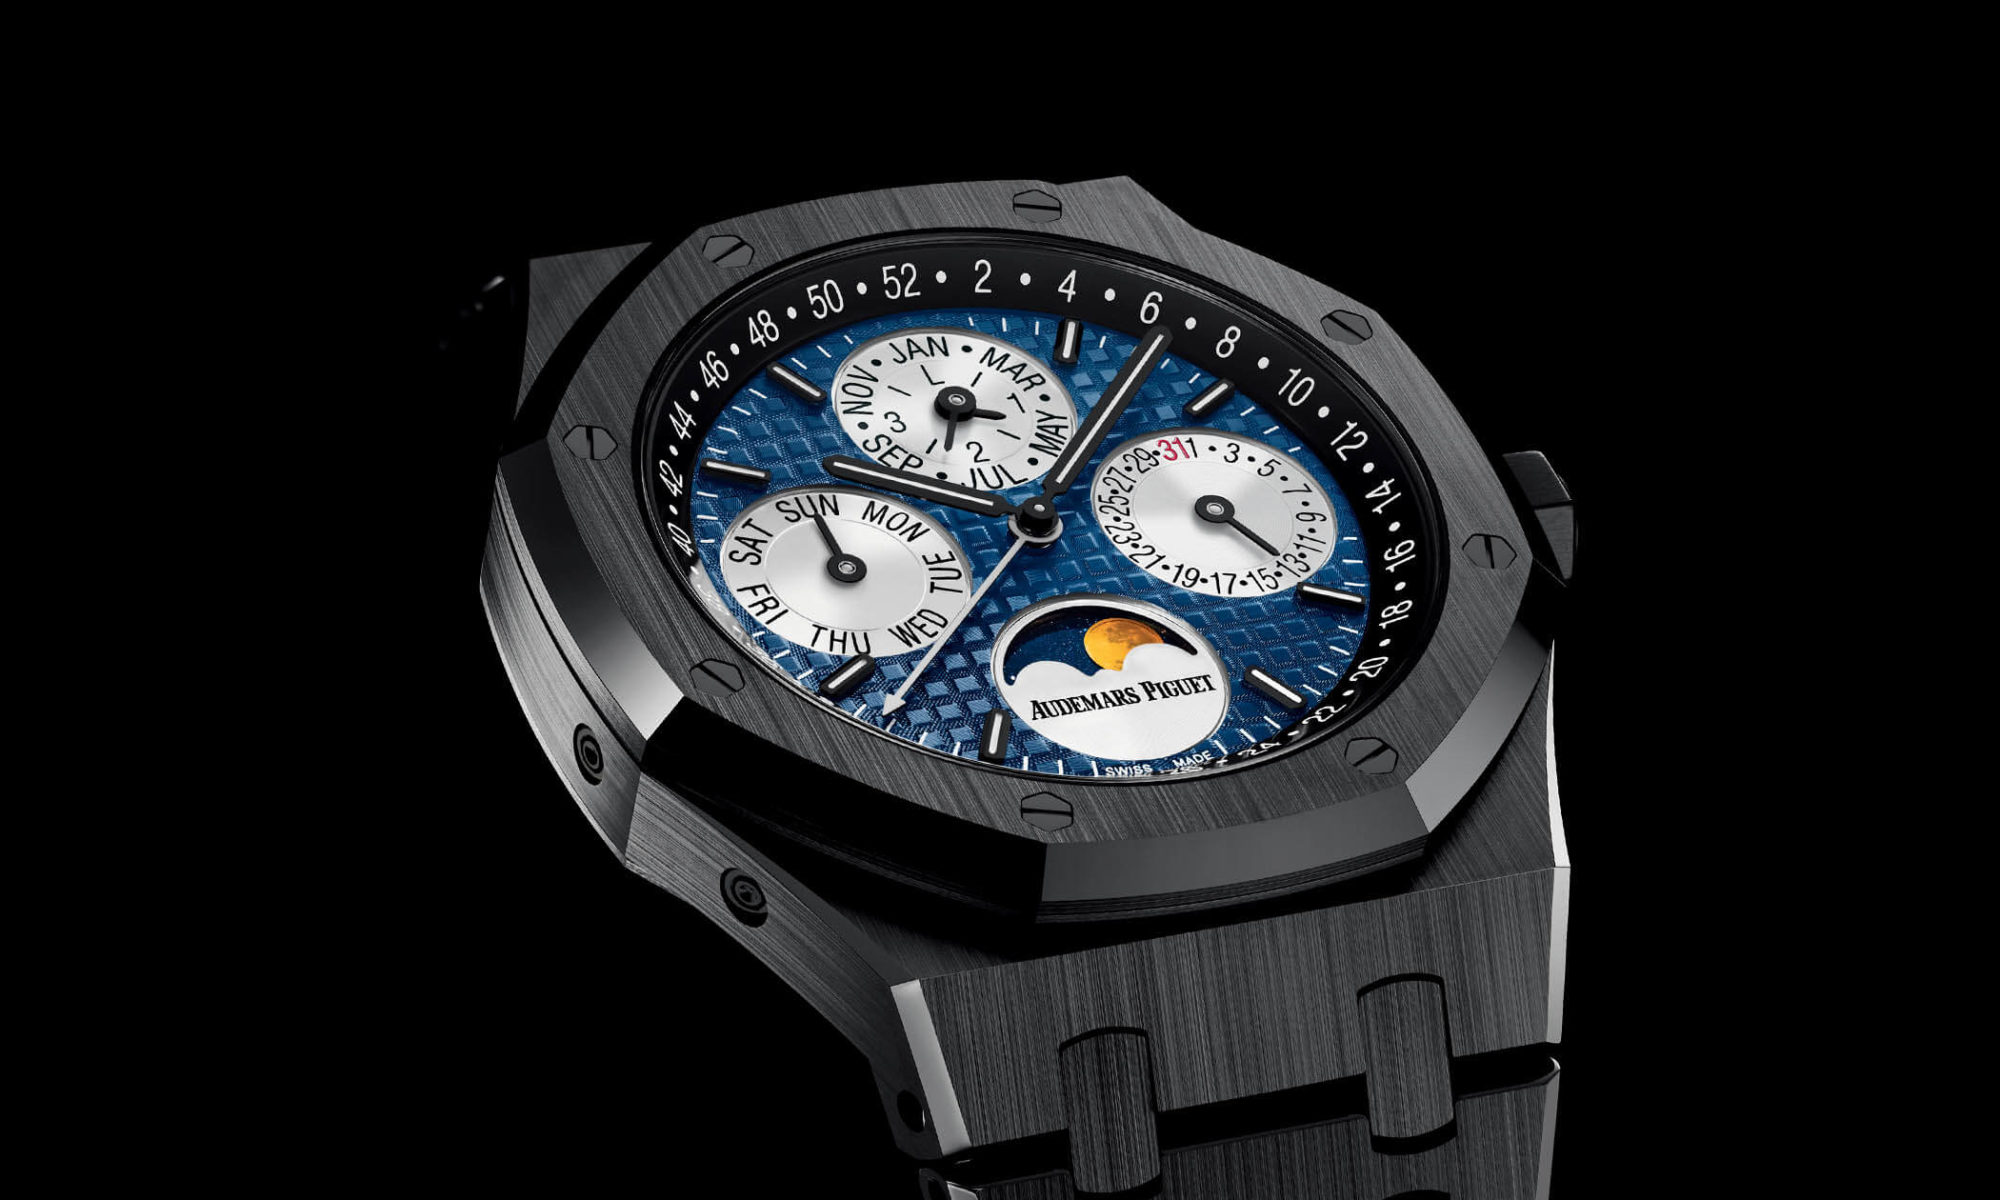 Audemars piguet royal oak ceramique onlywatch